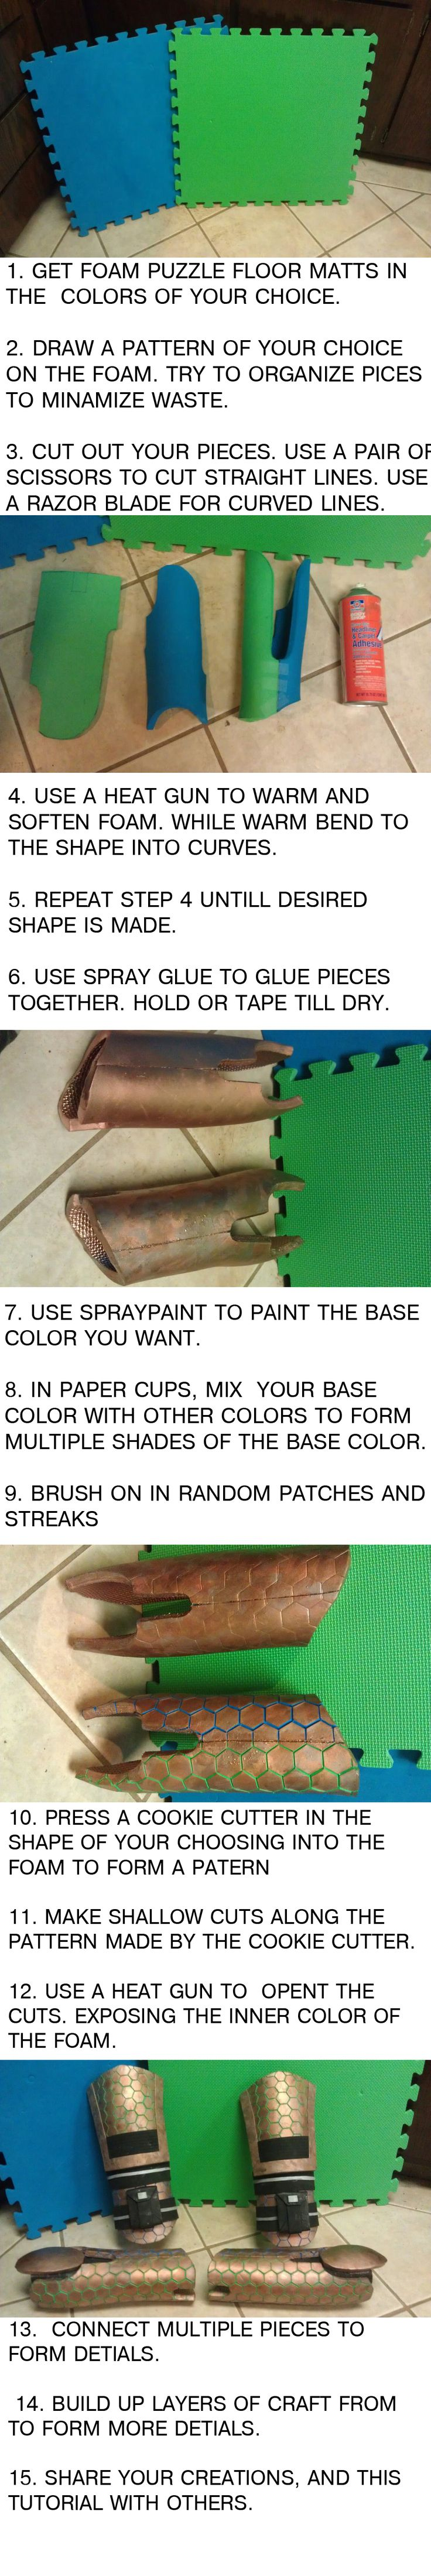 How to make armor from foam floor mats. These would be pretty thick, but would be good for armor that needs to look thick or have details carved into it.